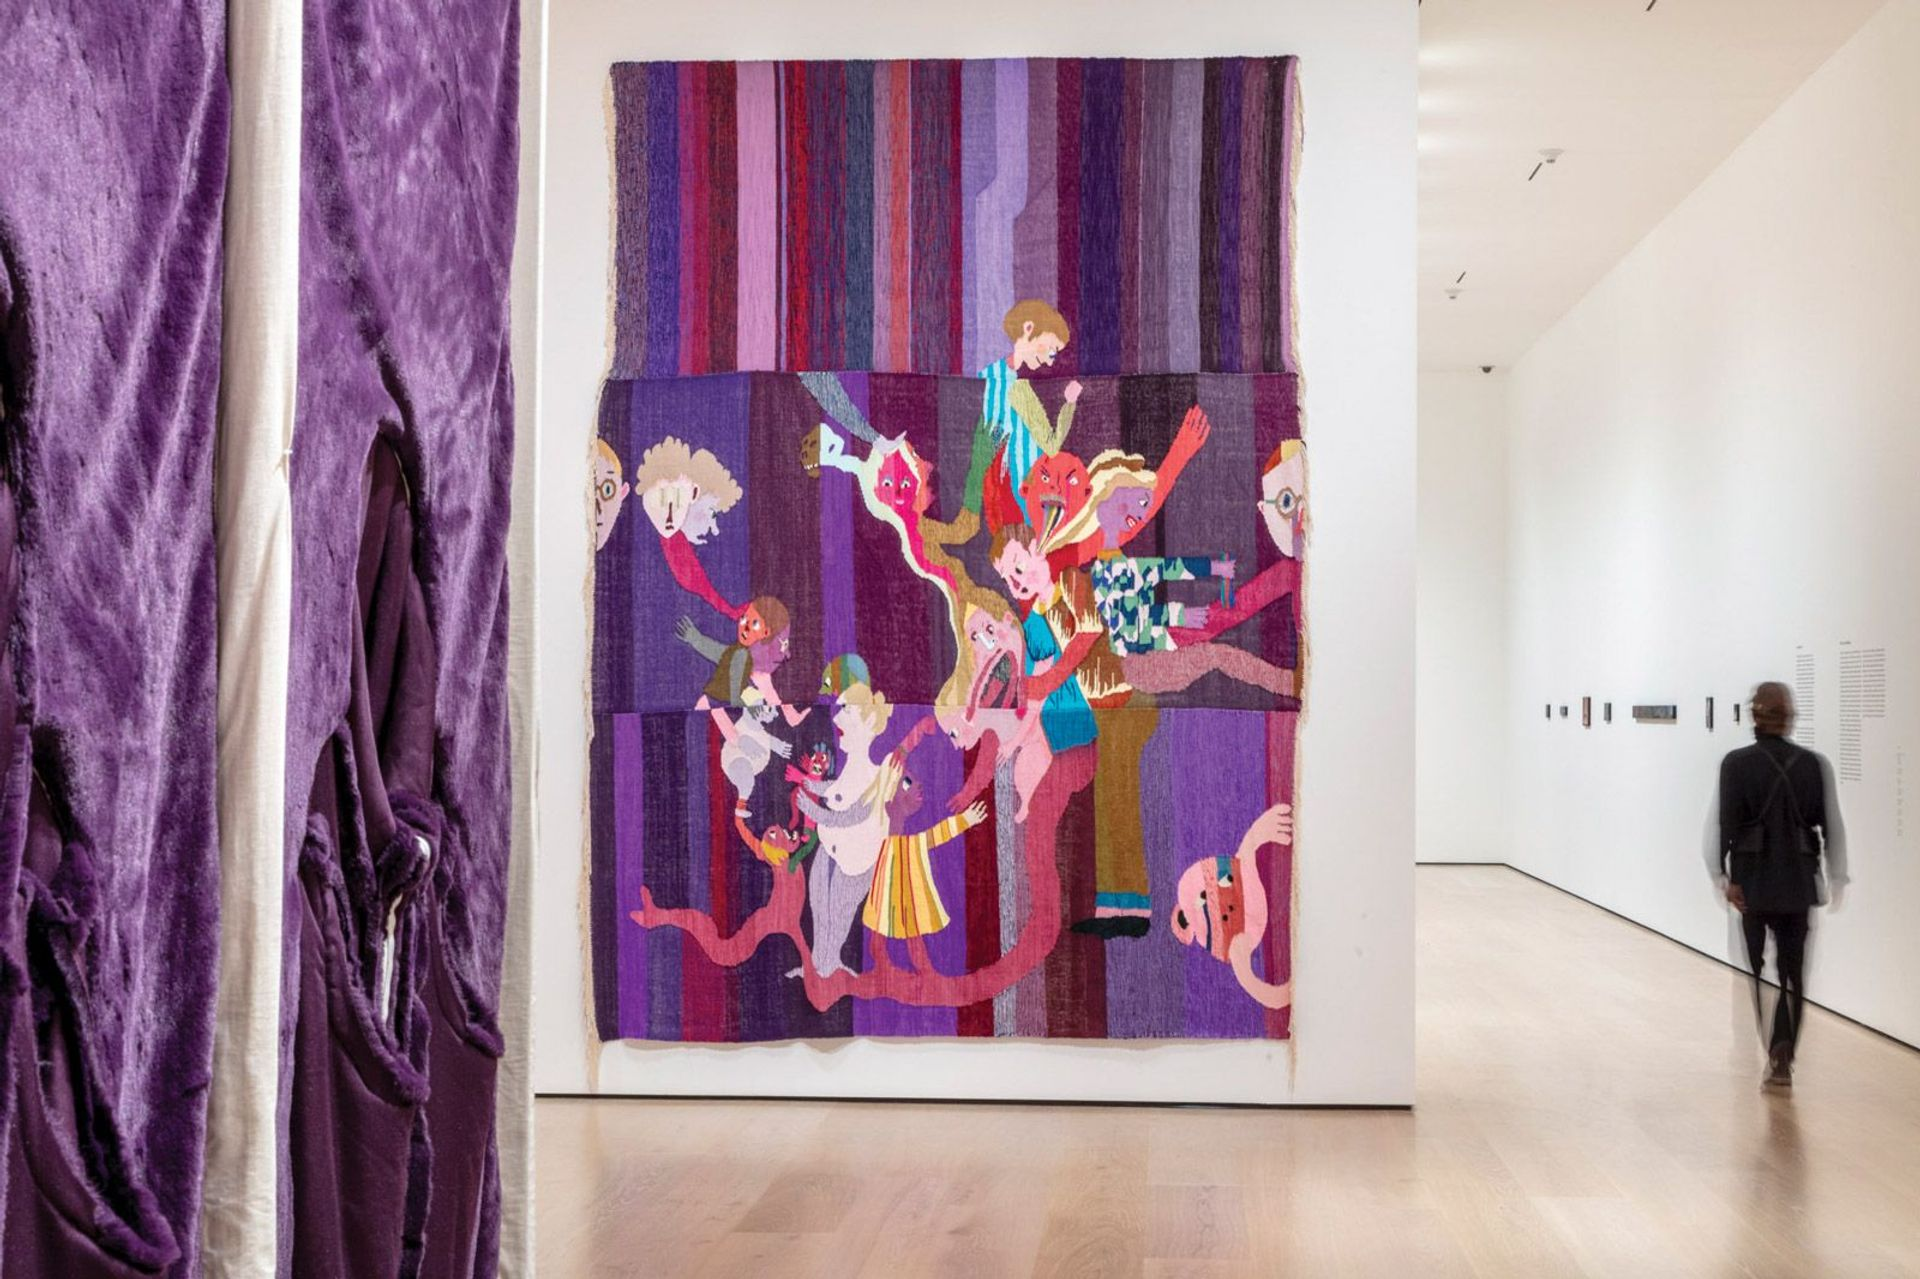 Weaving stories: Christina Forrer's tapestry Gebunden II (2020), at the Hammer Museum, examines family relationships. Left, in the foreground, is part of Nicola L.'s La Chambre en Fourrure, an interactive work that cannot be touched in the Covid-19 era © Joshua White